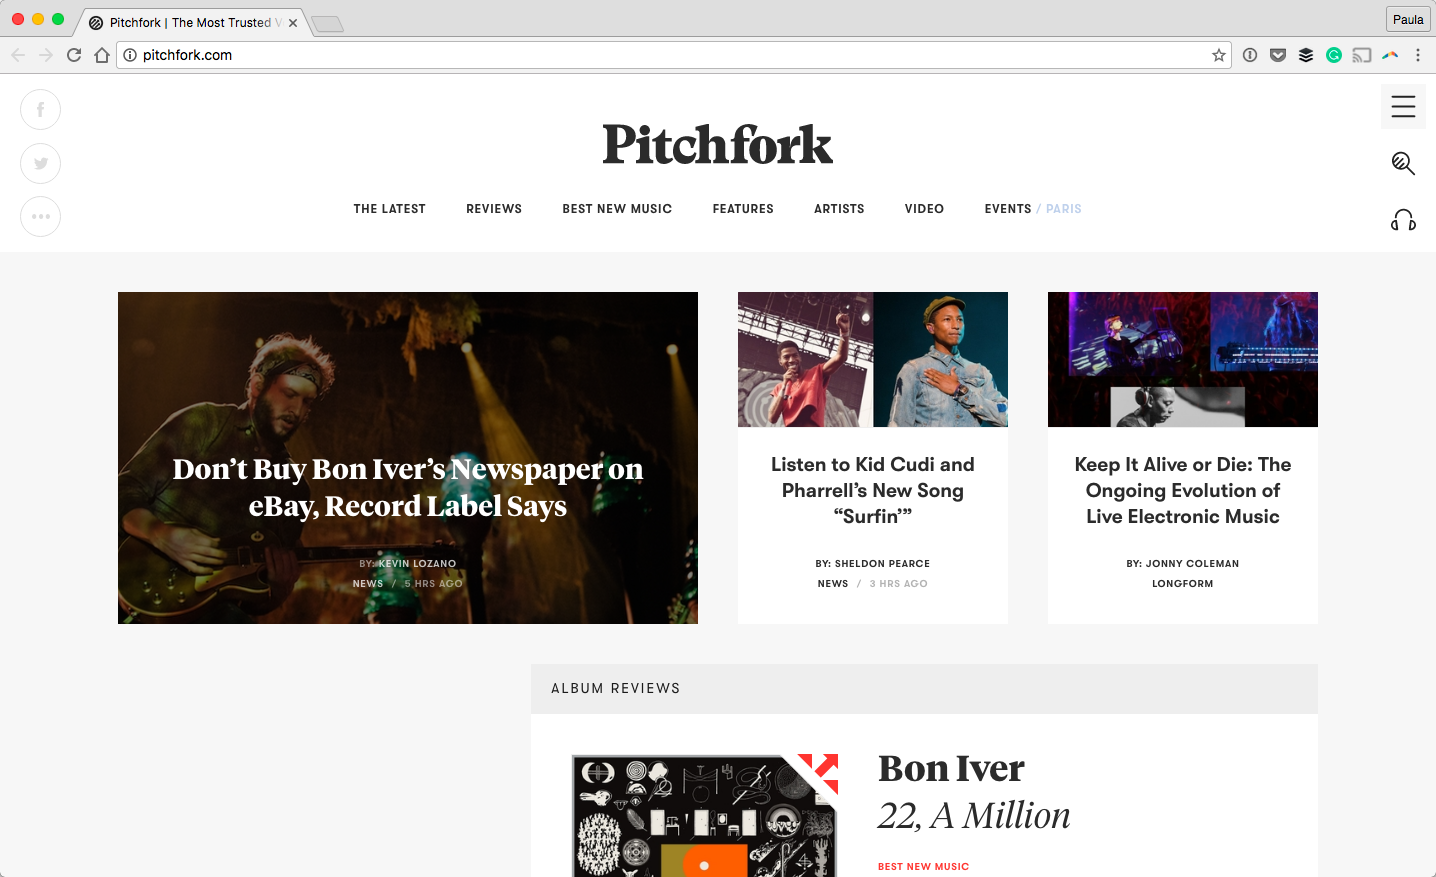 pitchfork-the-most-trusted-voice-in-music-2016-09-30-22-25-22